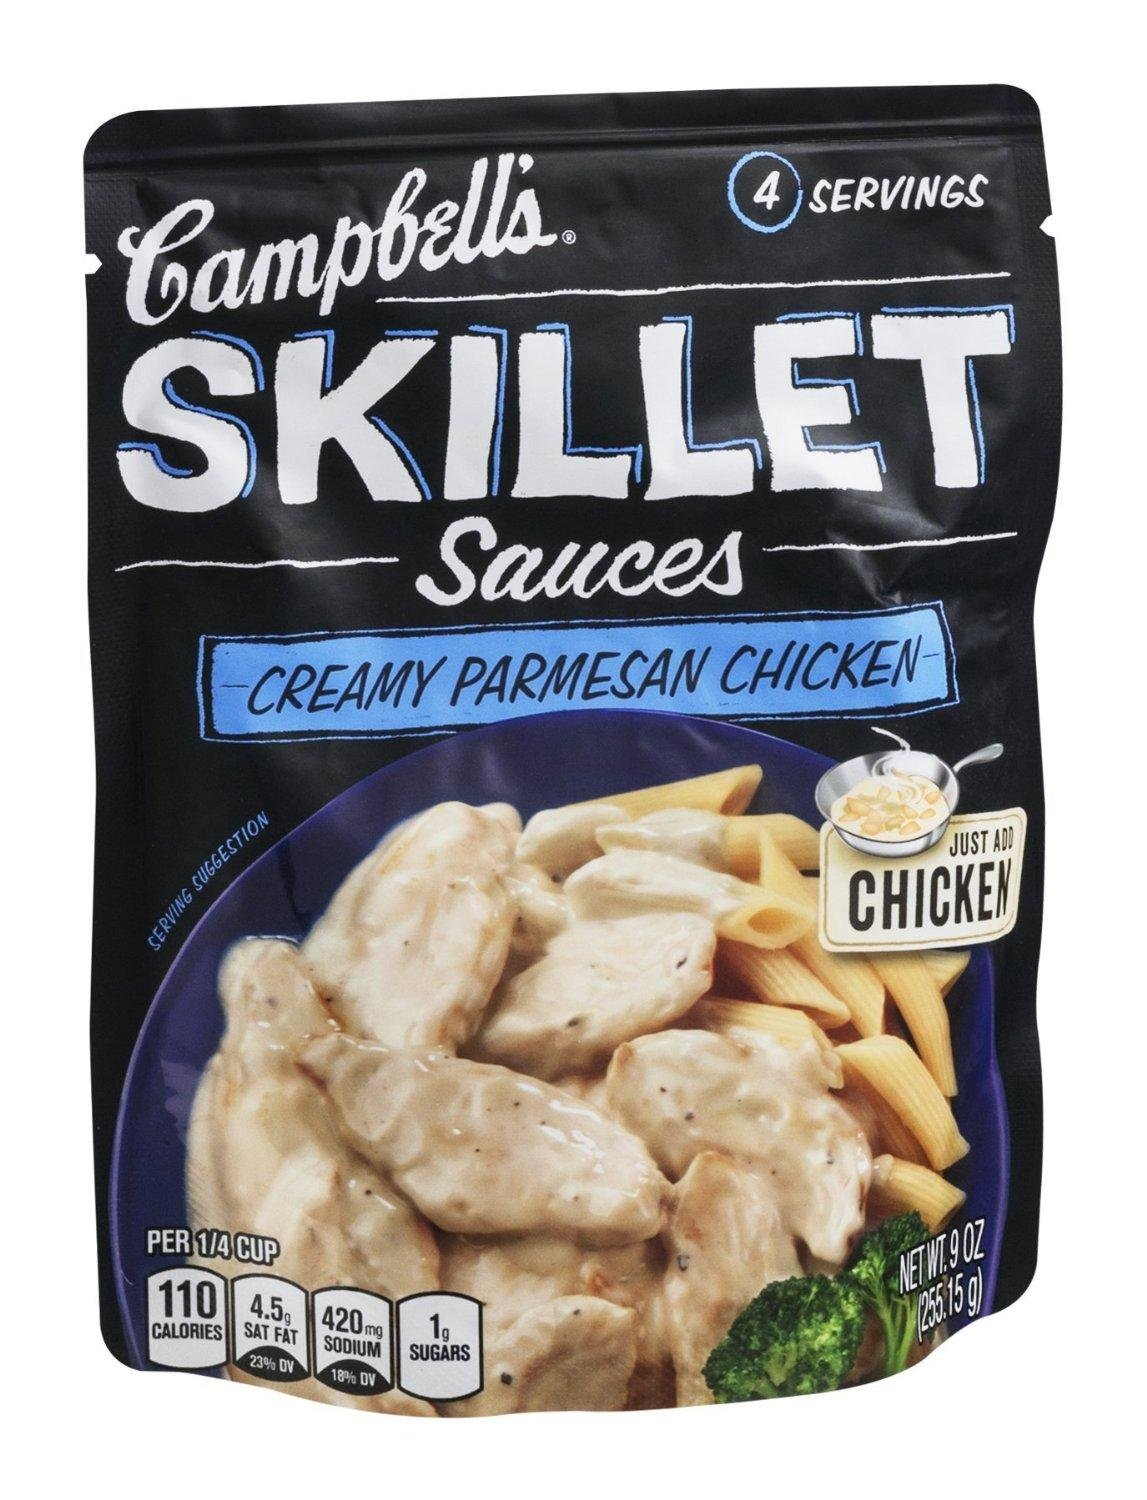 Campbell's Skillet Sauces: Creamy Parmesan Chicken (2 Pack) 9 oz Bags